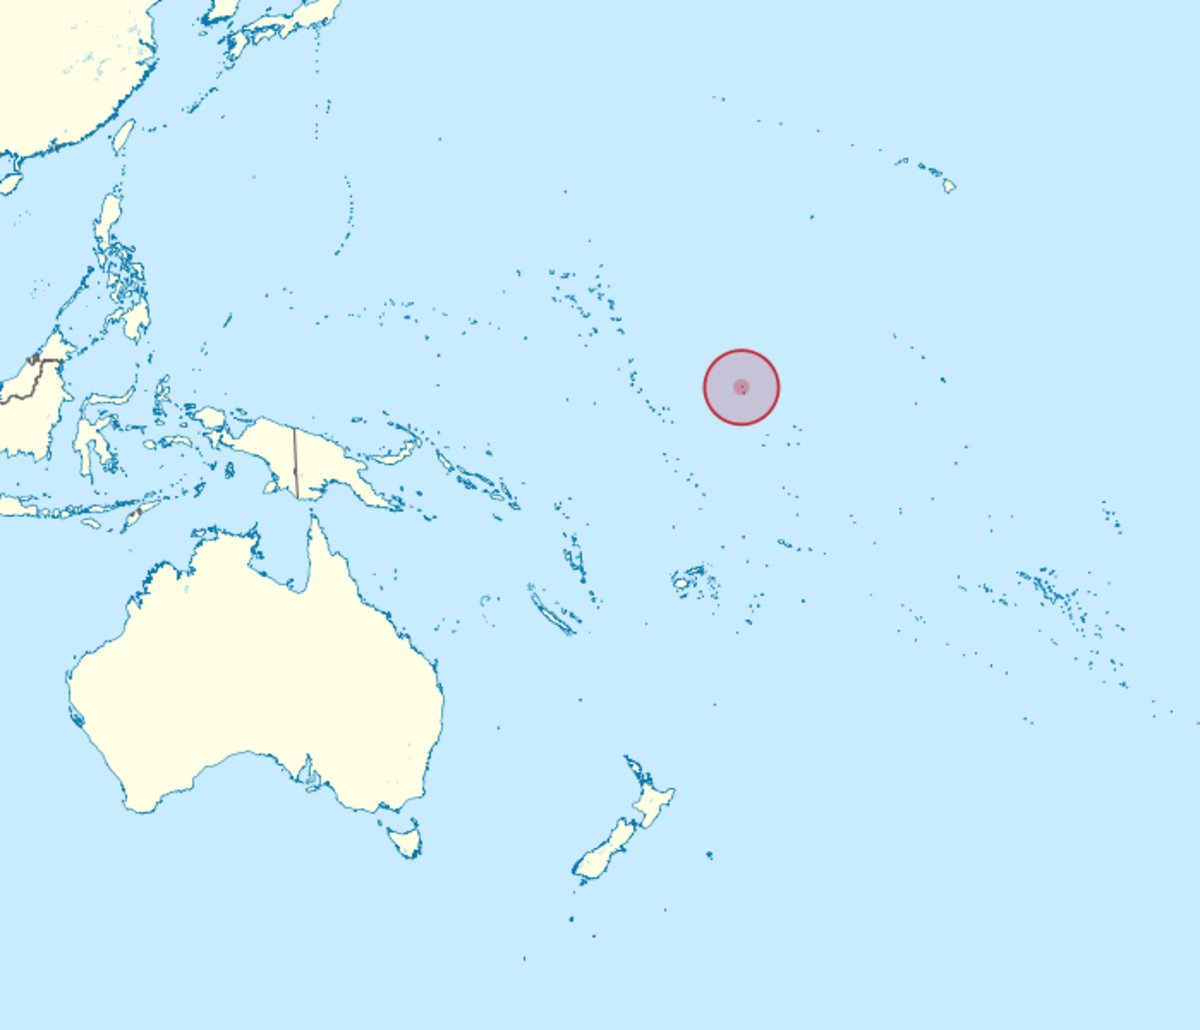 Approximate location (Refer circular shaded area) of Howard and Baker Islands in the Pacific Ocean. The rough co-ordinates for both islands are 0 to 1 Degree North and 176 Degrees West.